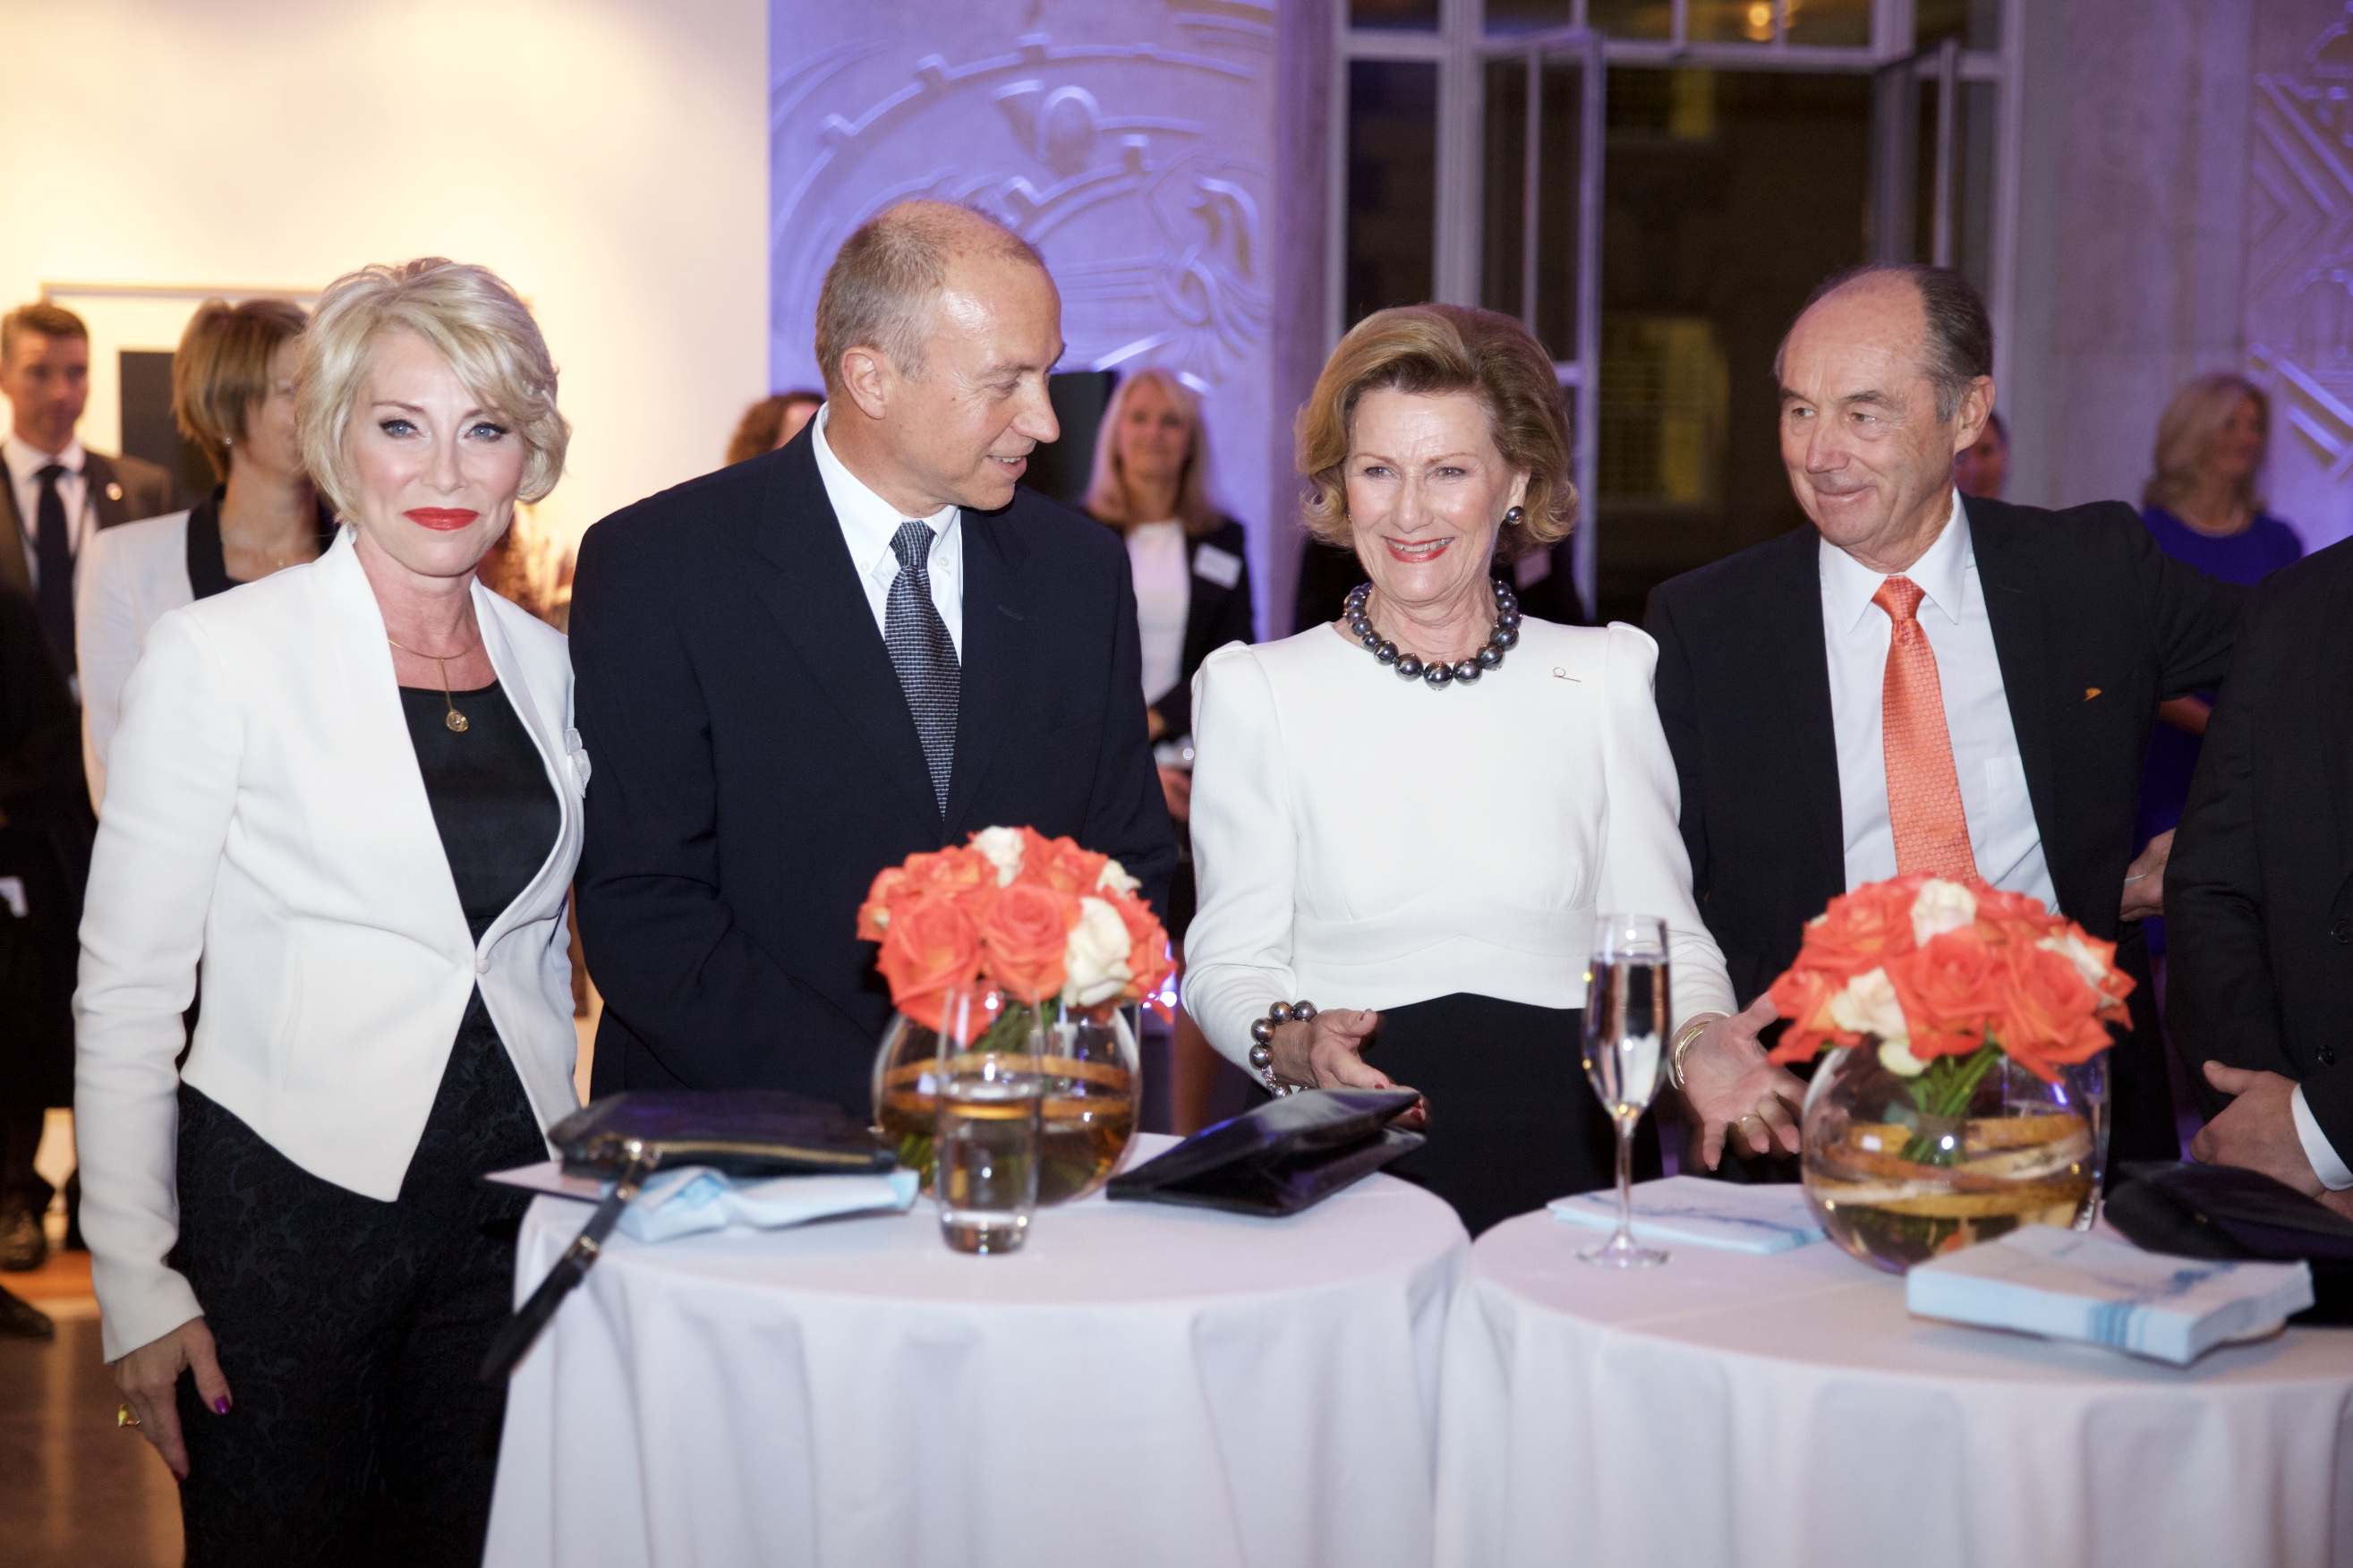 Queen Sonja of Norway was present as a guest at the seminar the power of tomorrow.